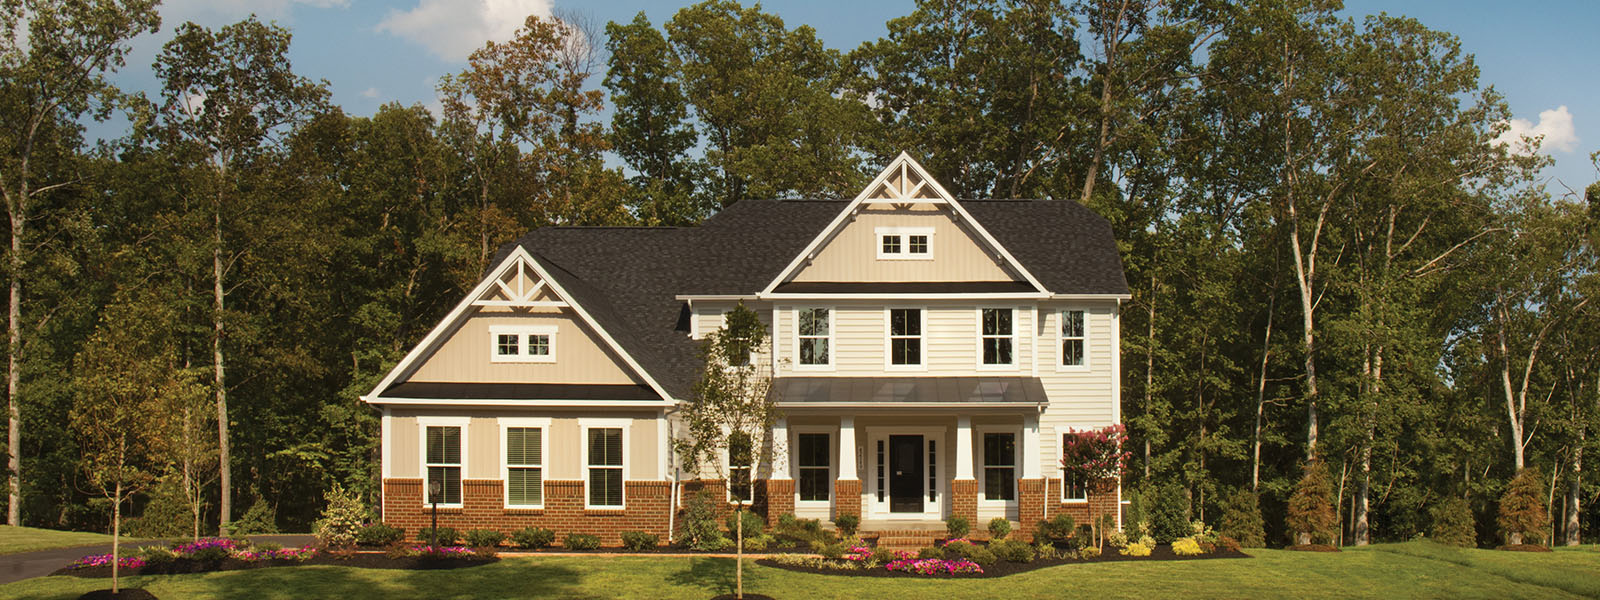 Golf Community near Charlottesville VA | Spring Creek | Low Taxes